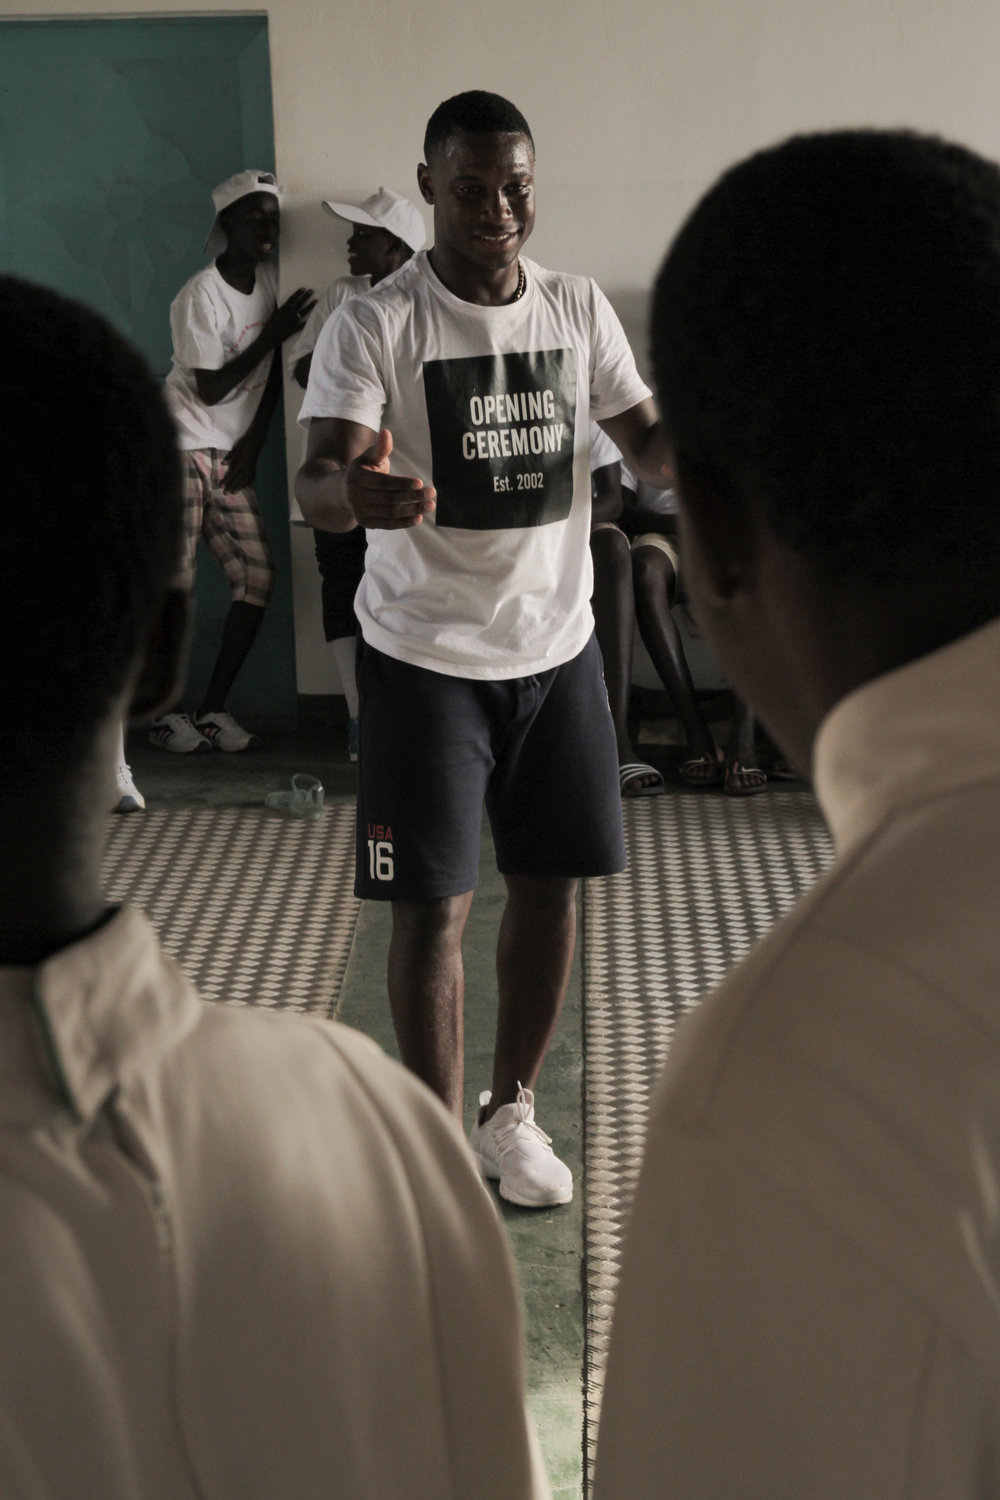 Thies, Senegal OSIWA (Open Society for West Africa)     Partnered with OSIWA a not for profit using Fencing as a restorative justice tool in West Africa to teach fencing classes to their students.. Images shot by Dakar Lives & featured on CNN.